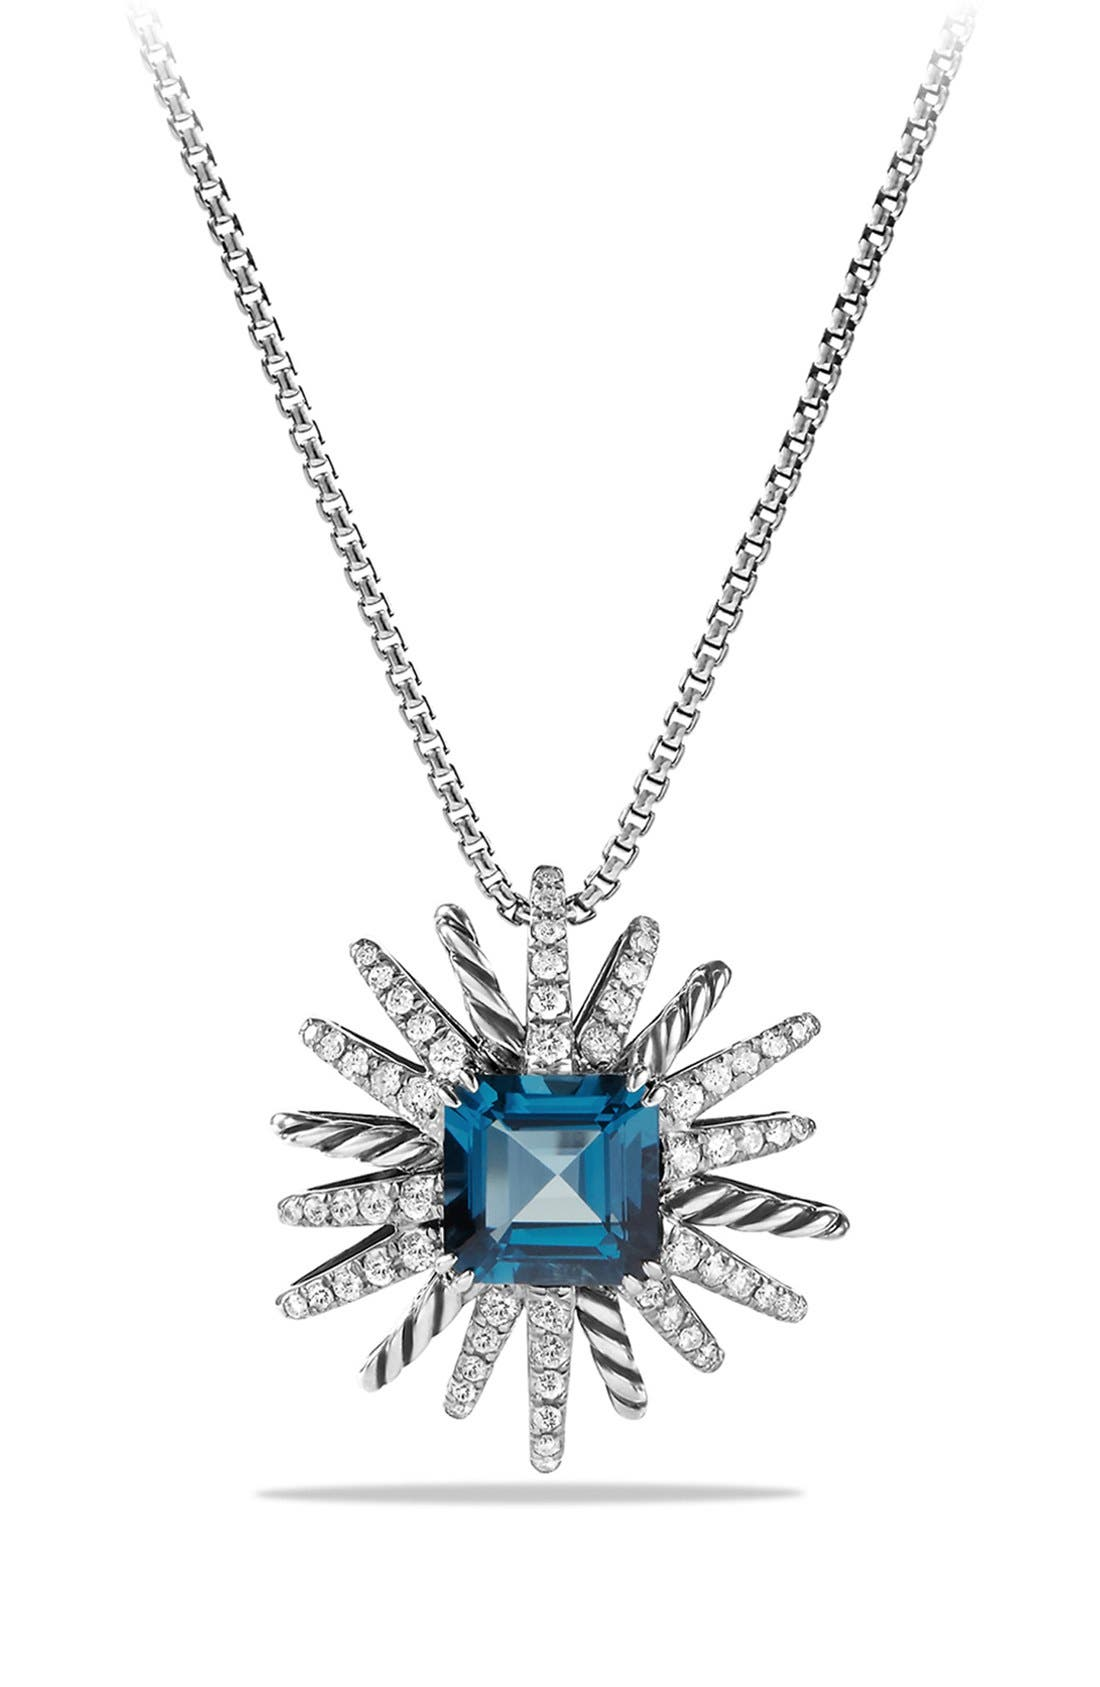 Alternate Image 1 Selected - David Yurman 'Starburst' Pendant Necklace